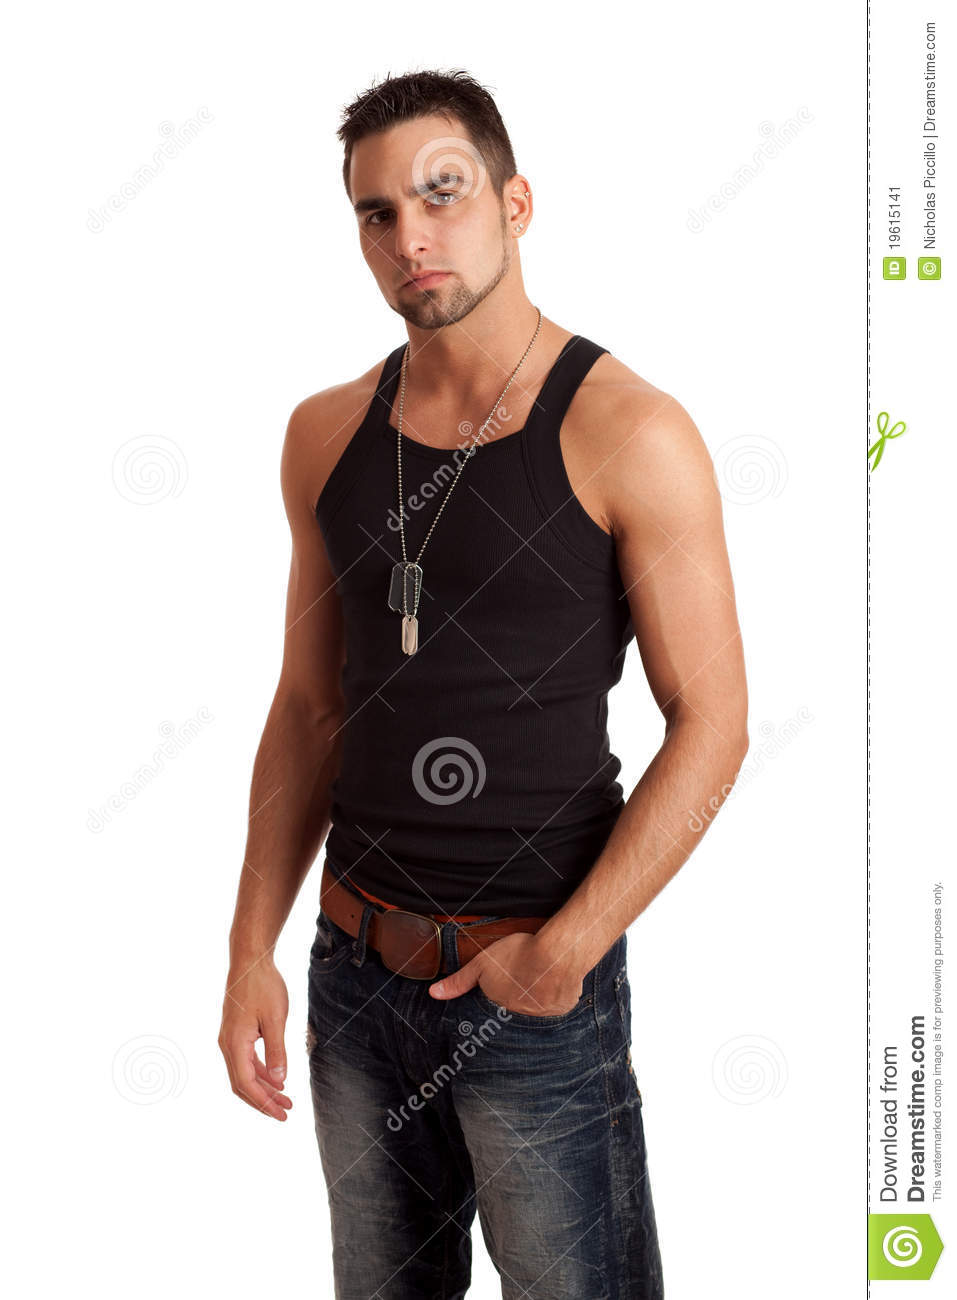 Man In BlackShirt And Jeans Stock Image - Image: 19615141